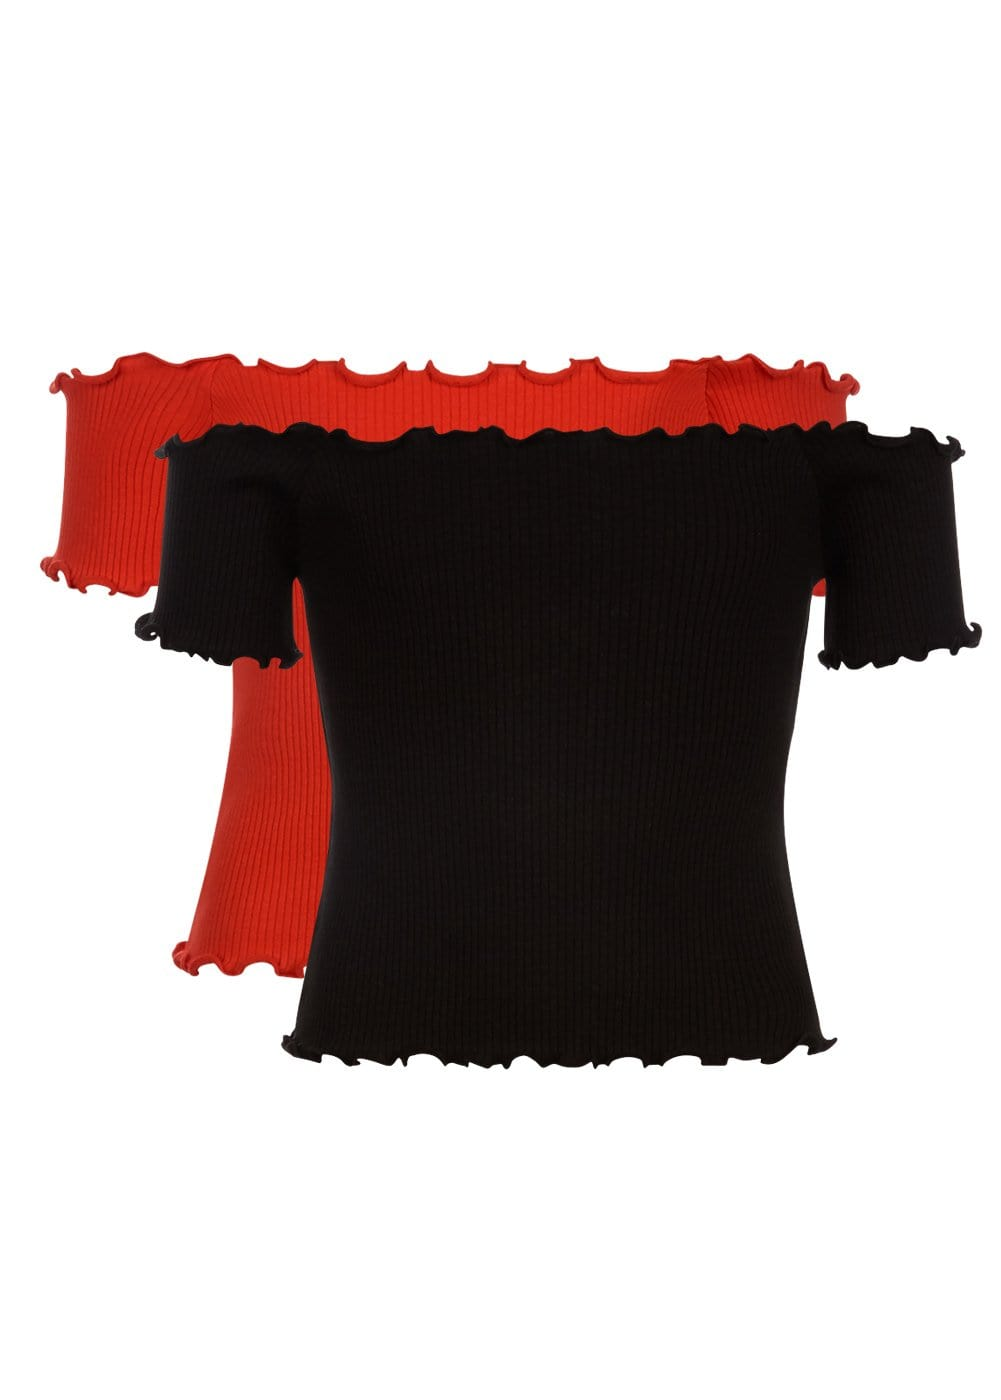 Teenzshop Girls Twin Pack Bardot Top Black/Red